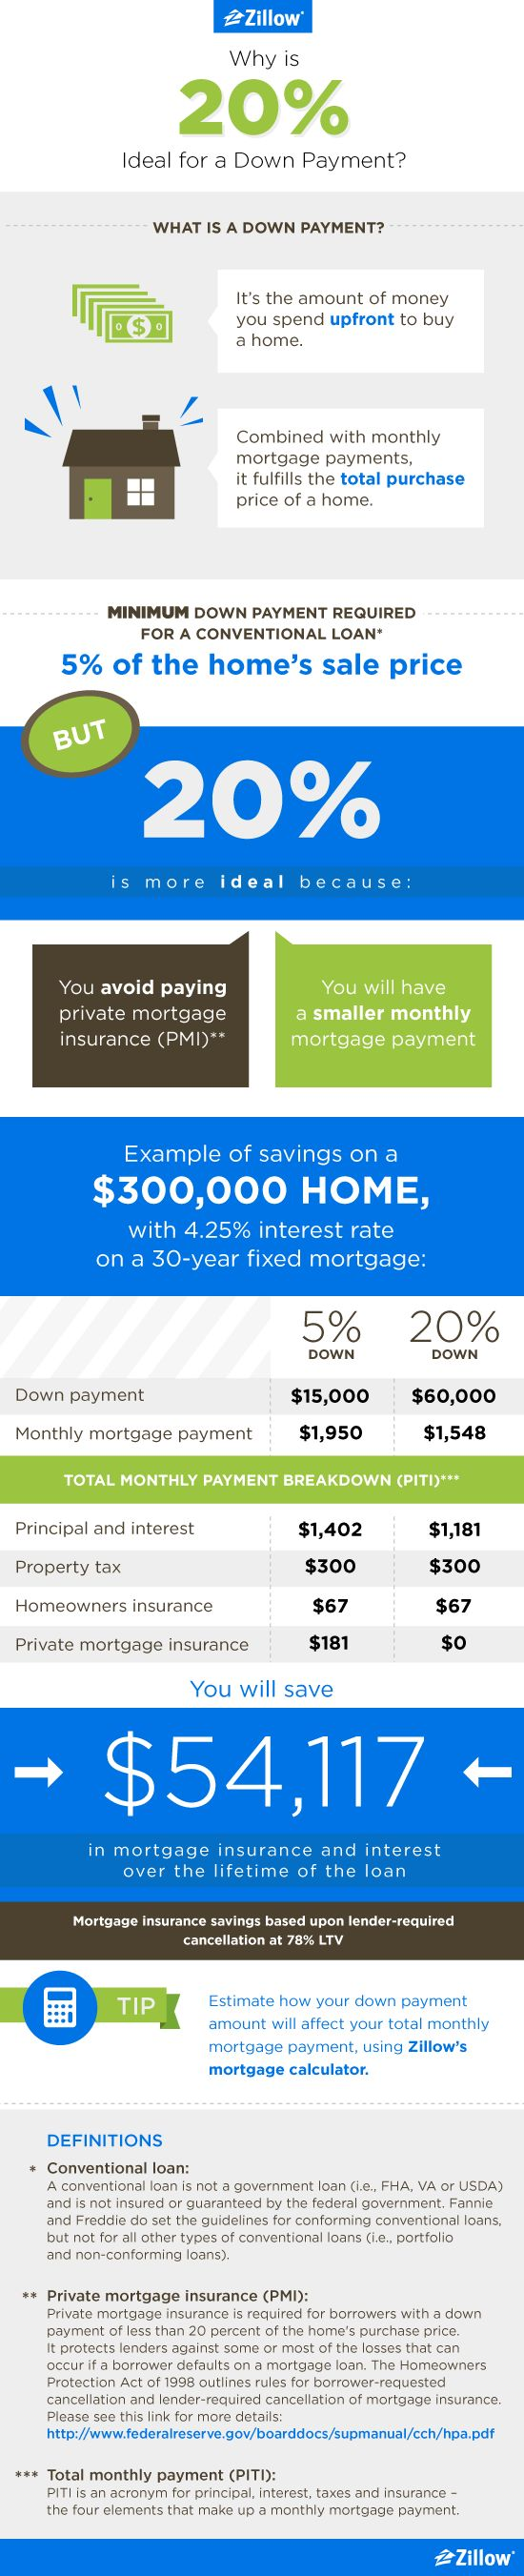 The minimum down payment required for a conventional loan is 5%. Some special loan programs allow a 3.5% or even 0% down payment. But still, a 20% down payment is considered ideal when purchasing a home.